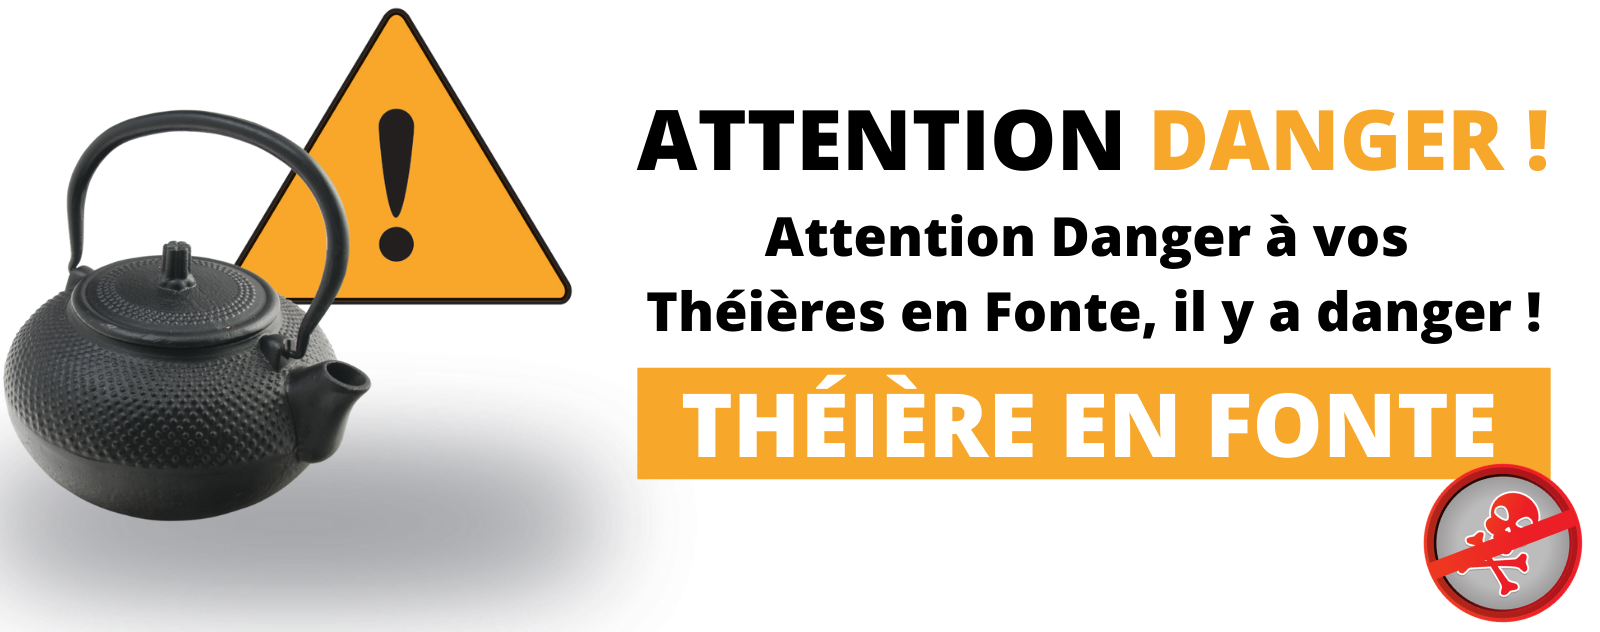 Attention à vos Théières en Fonte, il y a danger !